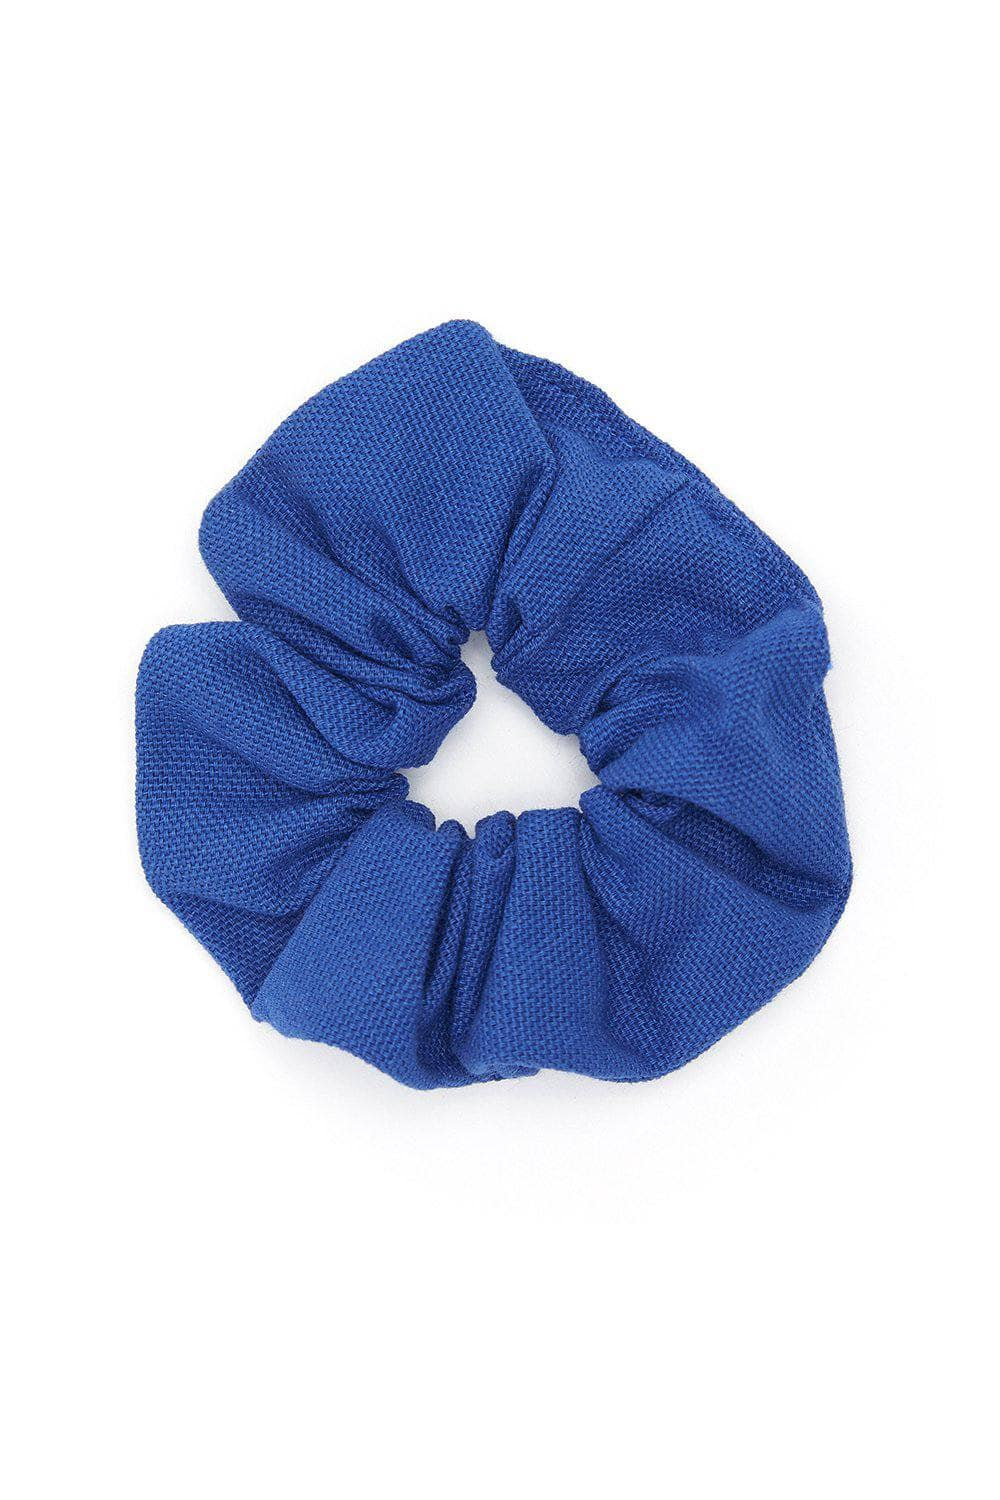 Lucy & Yak accessories 'Carter' Hair Scrunchie in Organic cotton Blue